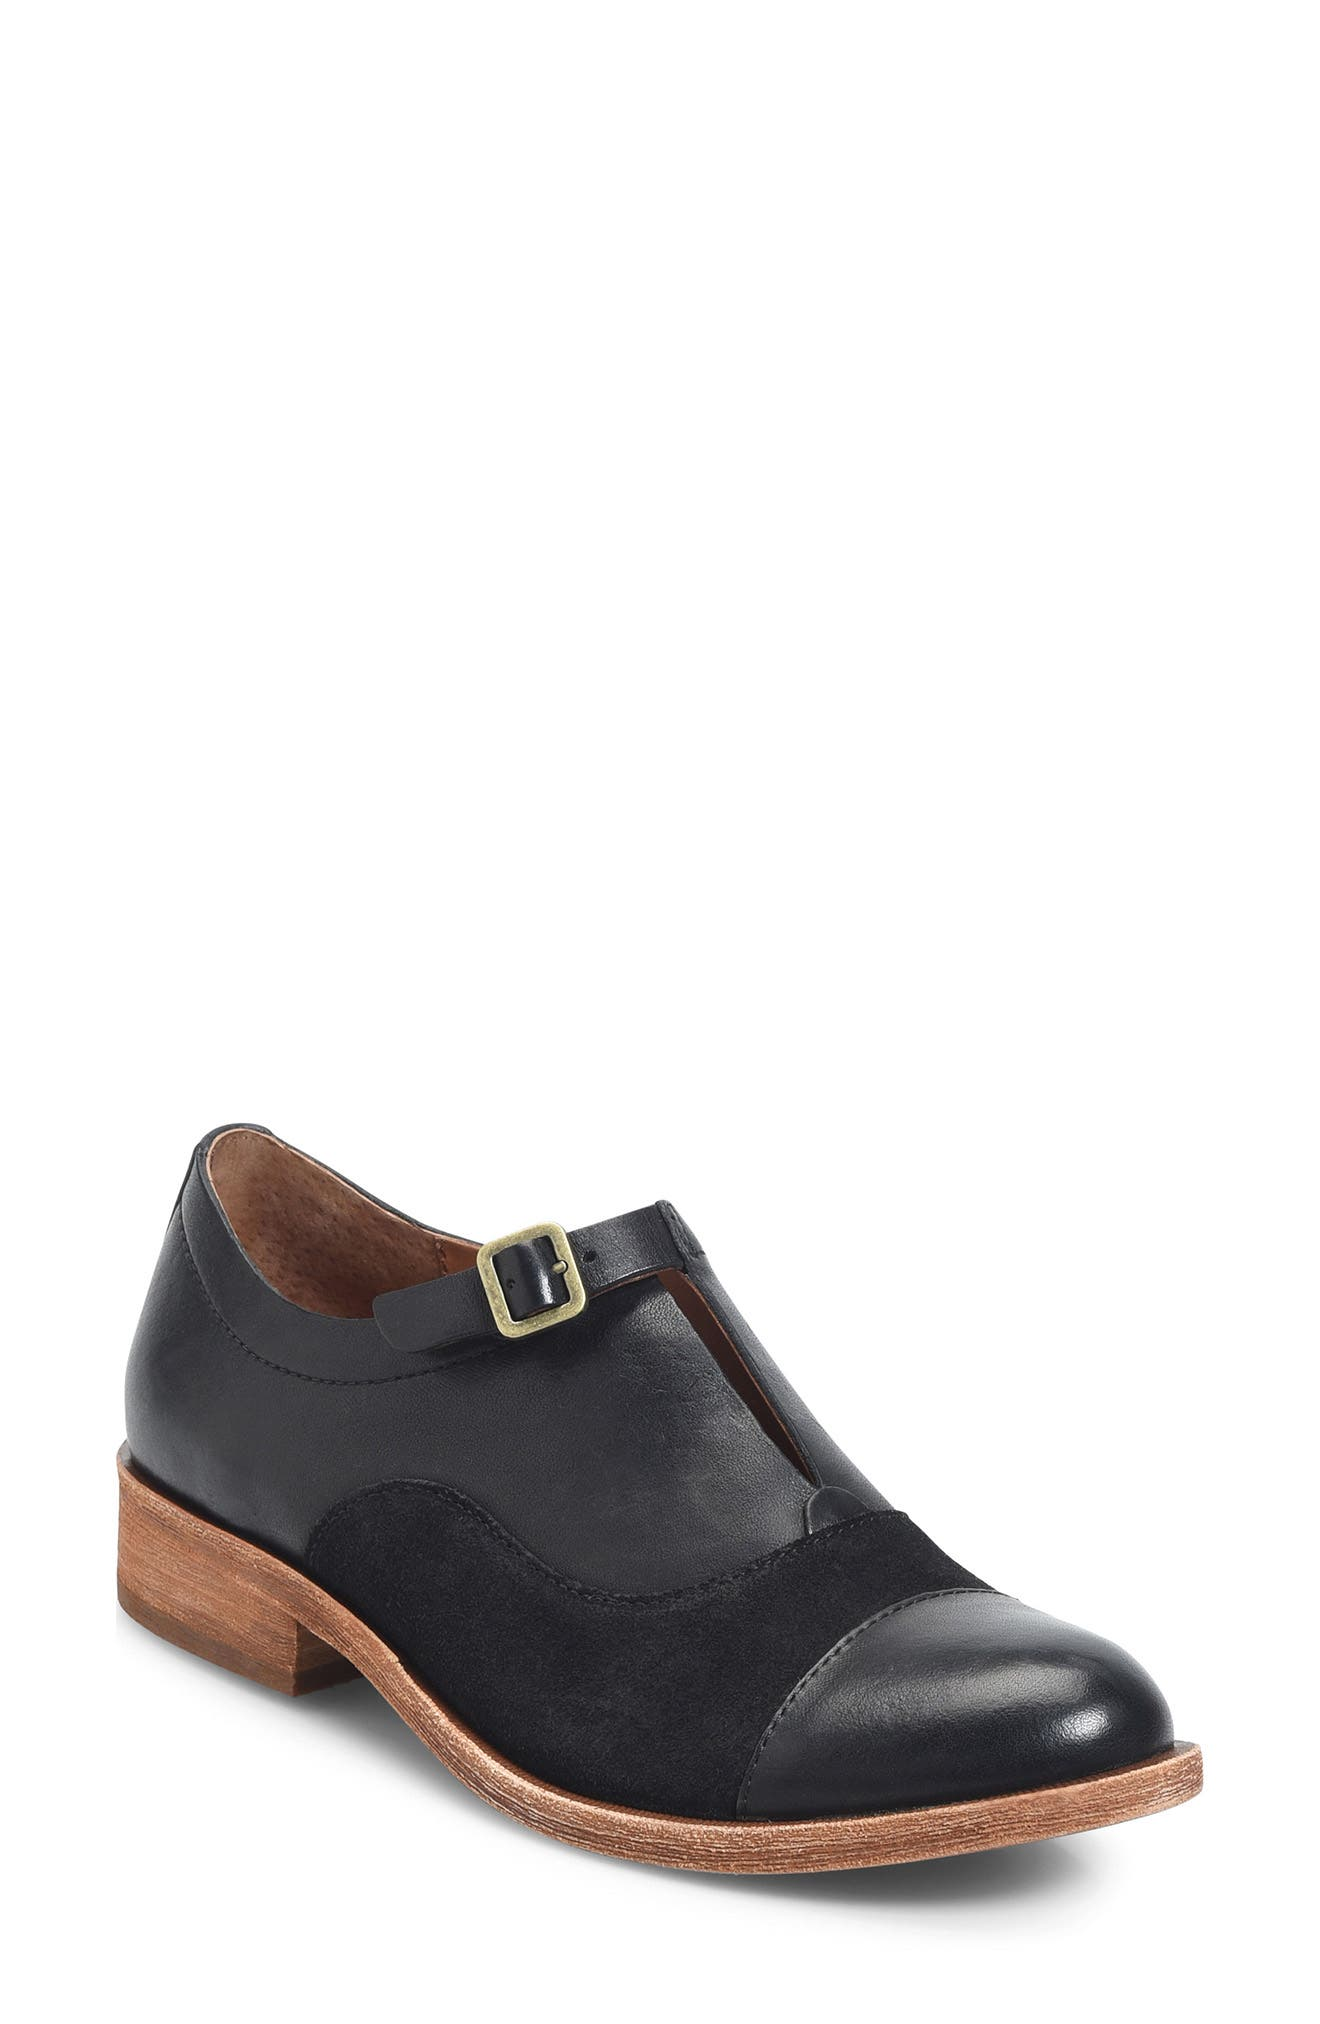 Alternate Image 1 Selected - Kork-Ease® 'Niseda' Oxford (Women)